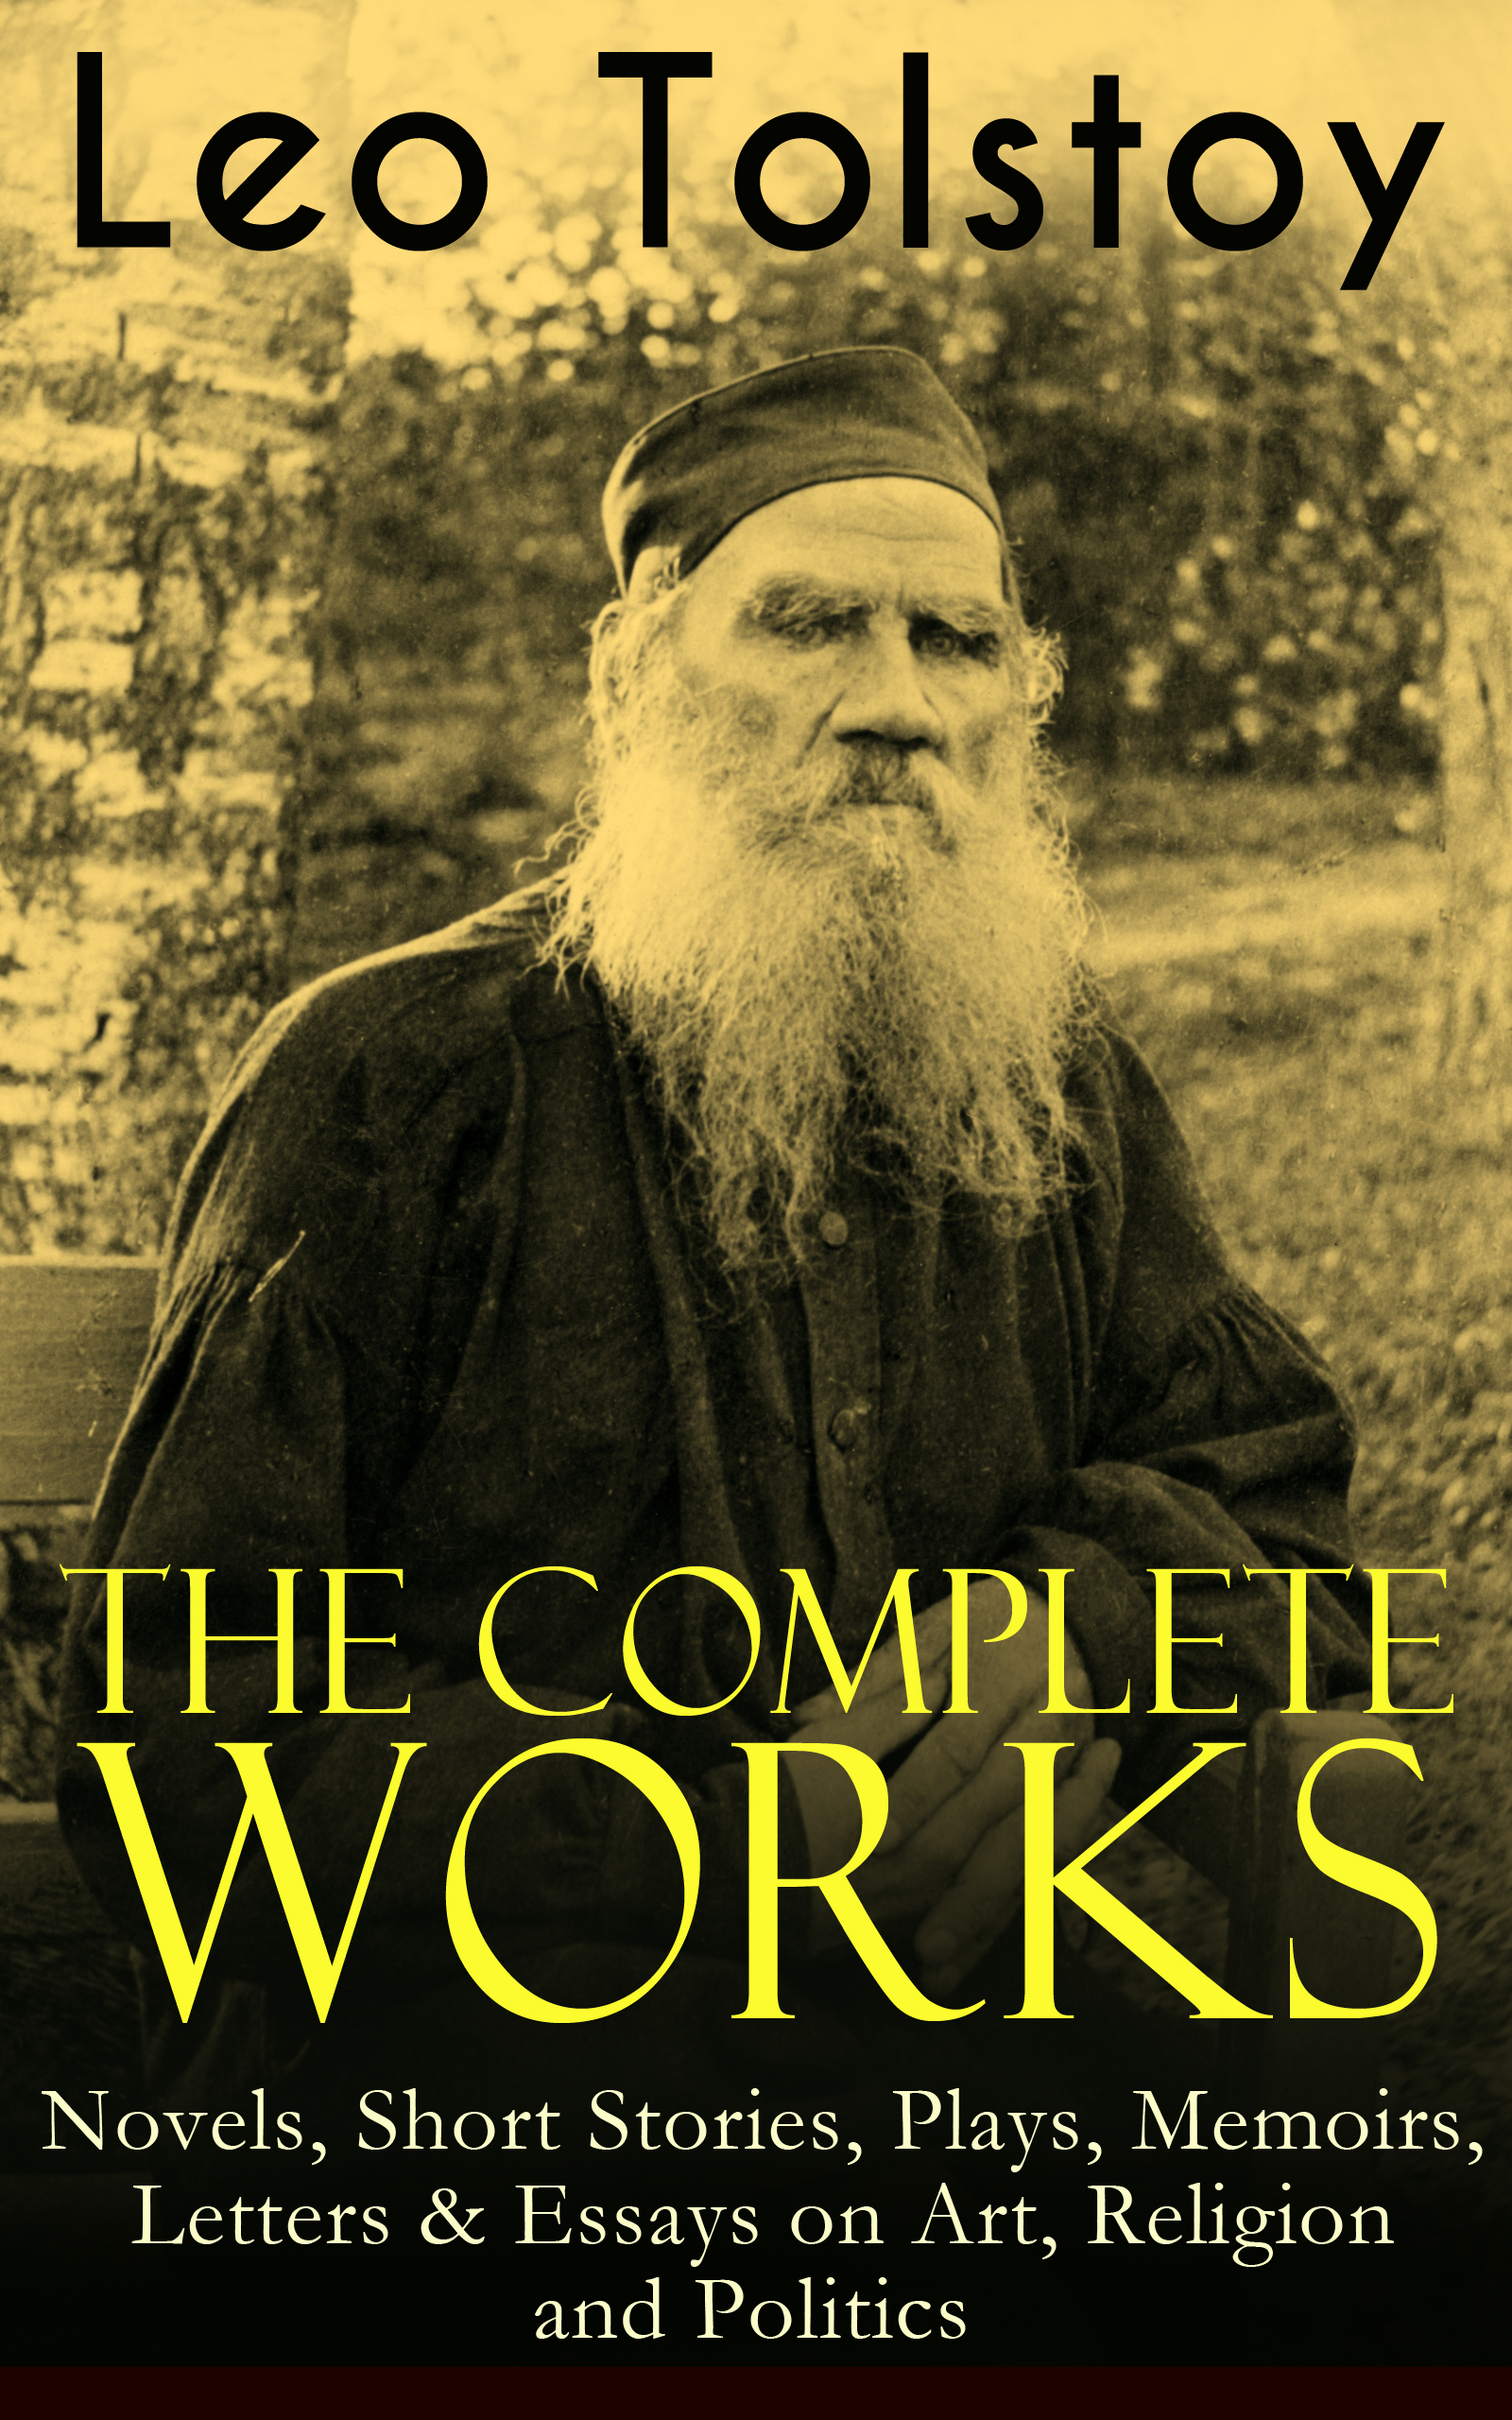 Leo Tolstoy The Complete Works of Leo Tolstoy: Novels, Short Stories, Plays, Memoirs, Letters & Essays on Art, Religion and Politics цена и фото